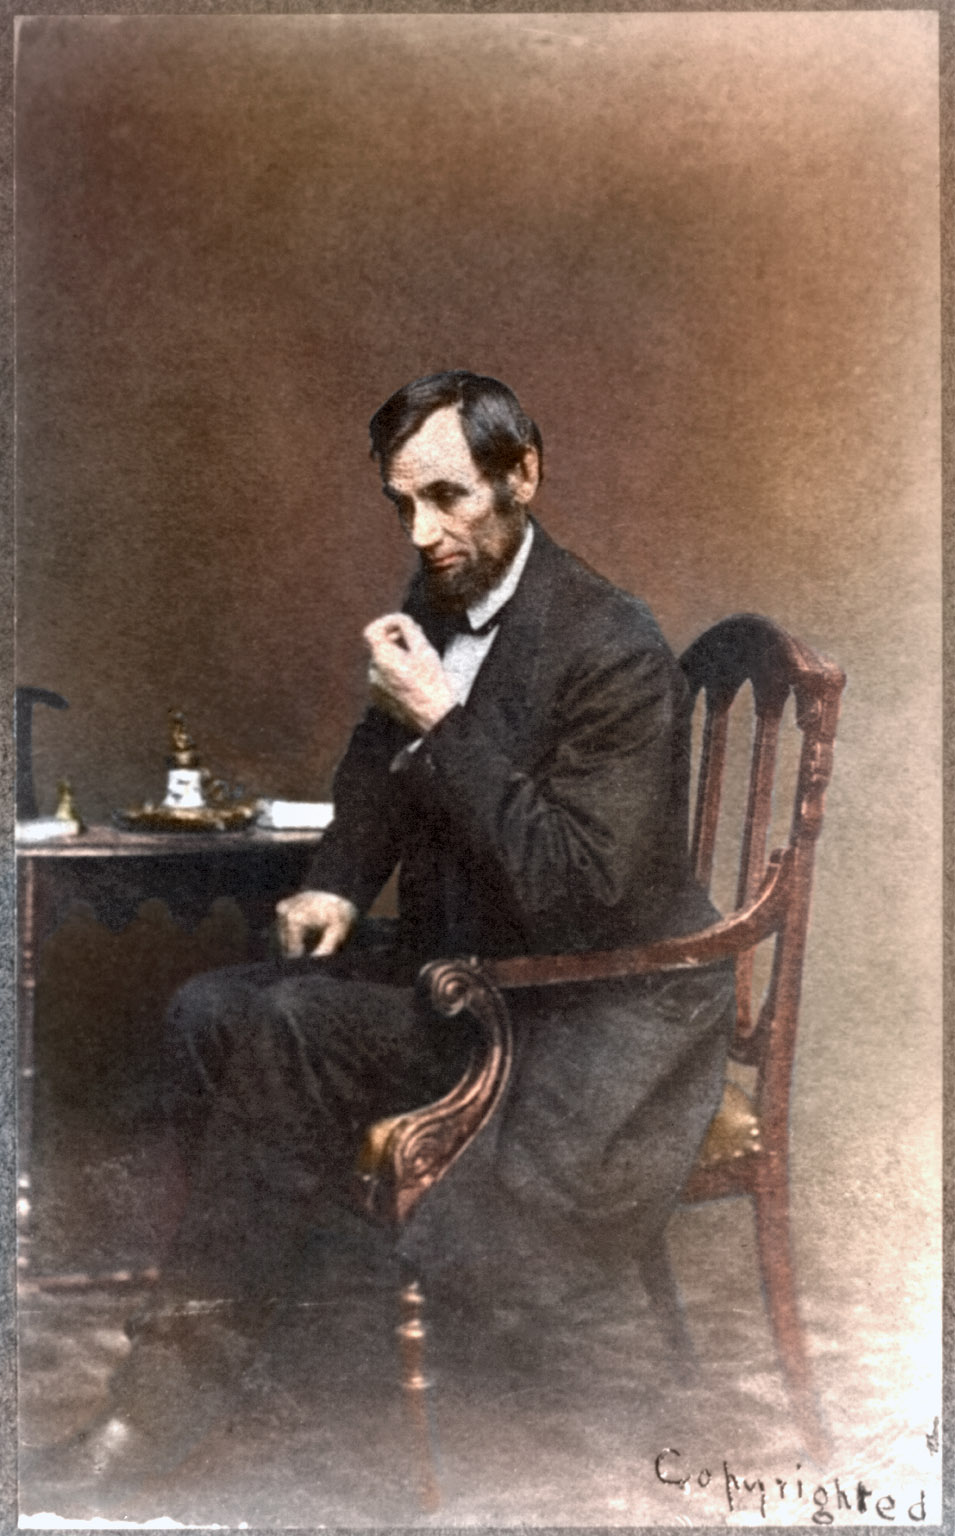 May 16, 1861. Abraham Lincoln, seated next to small table in Mathew Brady's studio in Washington, D.C.